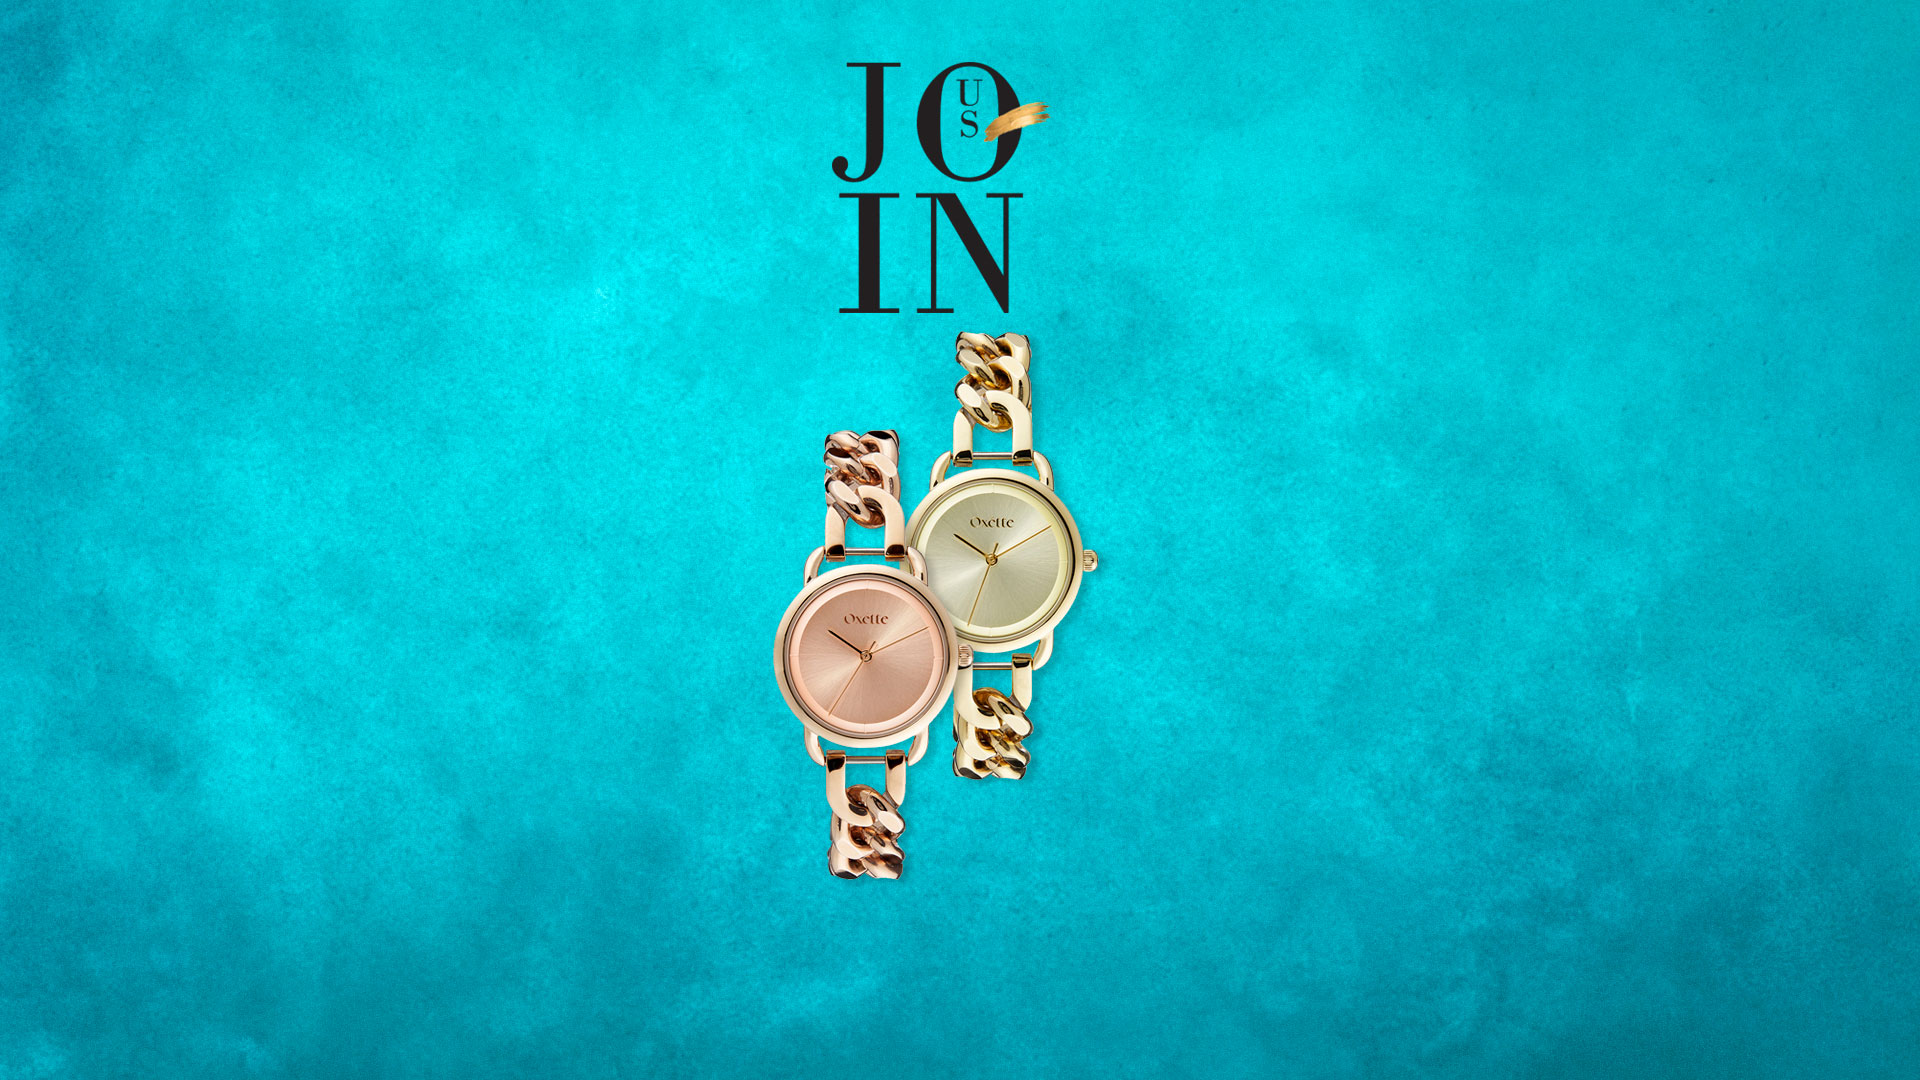 New Link Watch - Oxette